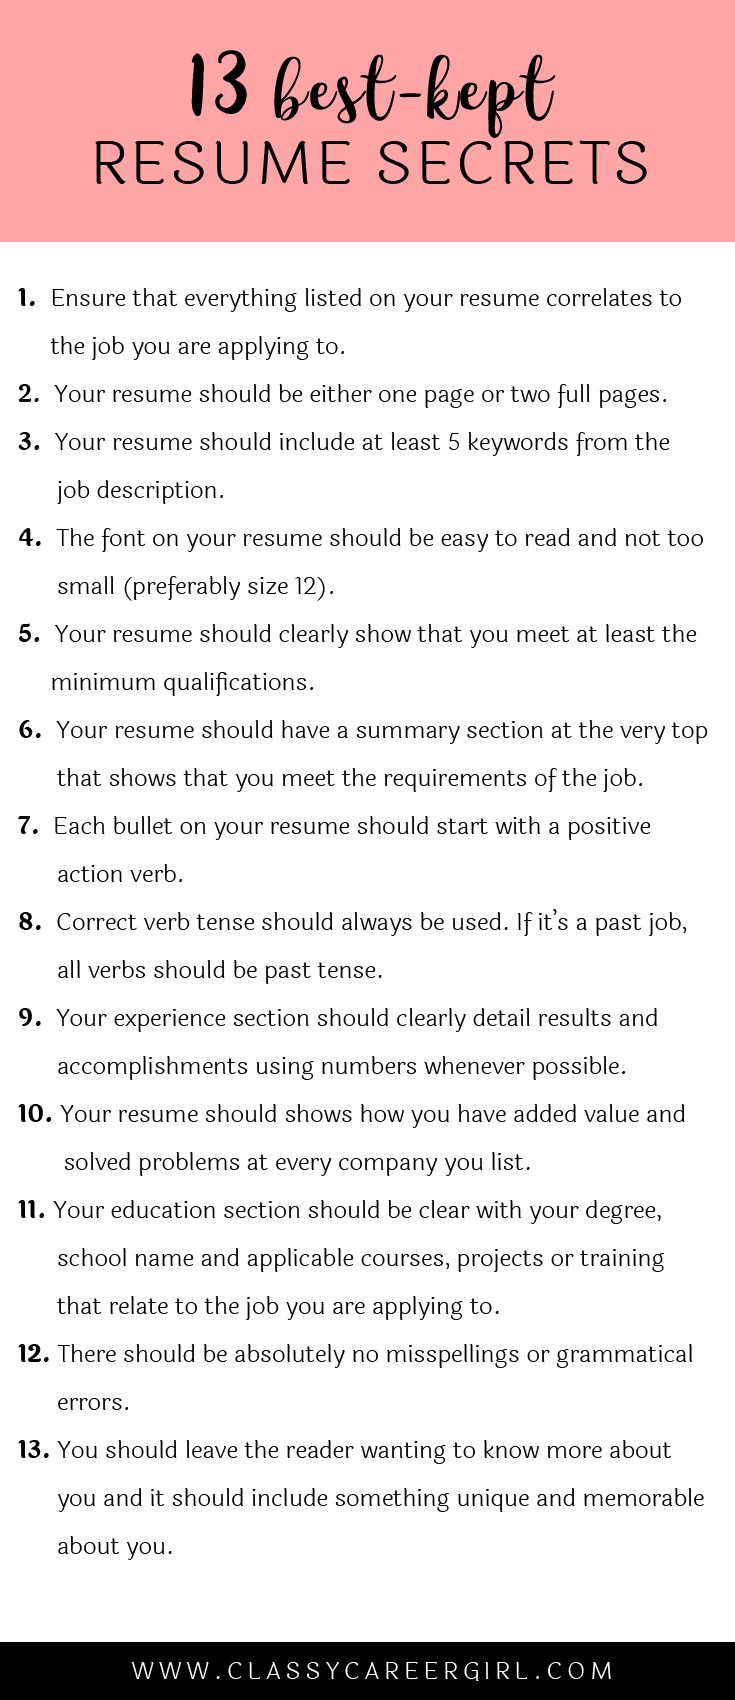 Opposenewapstandardsus  Outstanding  Ideas About Resume On Pinterest  Cv Format Resume Cv And  With Likable Some Hiring Managers Will Toss Your Resume Out If You Dont Know These  With Alluring Latex Resume Also Sample Of Resume In Addition Resume Education And How Do You Make A Resume As Well As Modern Resume Template Additionally Resume Website From Pinterestcom With Opposenewapstandardsus  Likable  Ideas About Resume On Pinterest  Cv Format Resume Cv And  With Alluring Some Hiring Managers Will Toss Your Resume Out If You Dont Know These  And Outstanding Latex Resume Also Sample Of Resume In Addition Resume Education From Pinterestcom